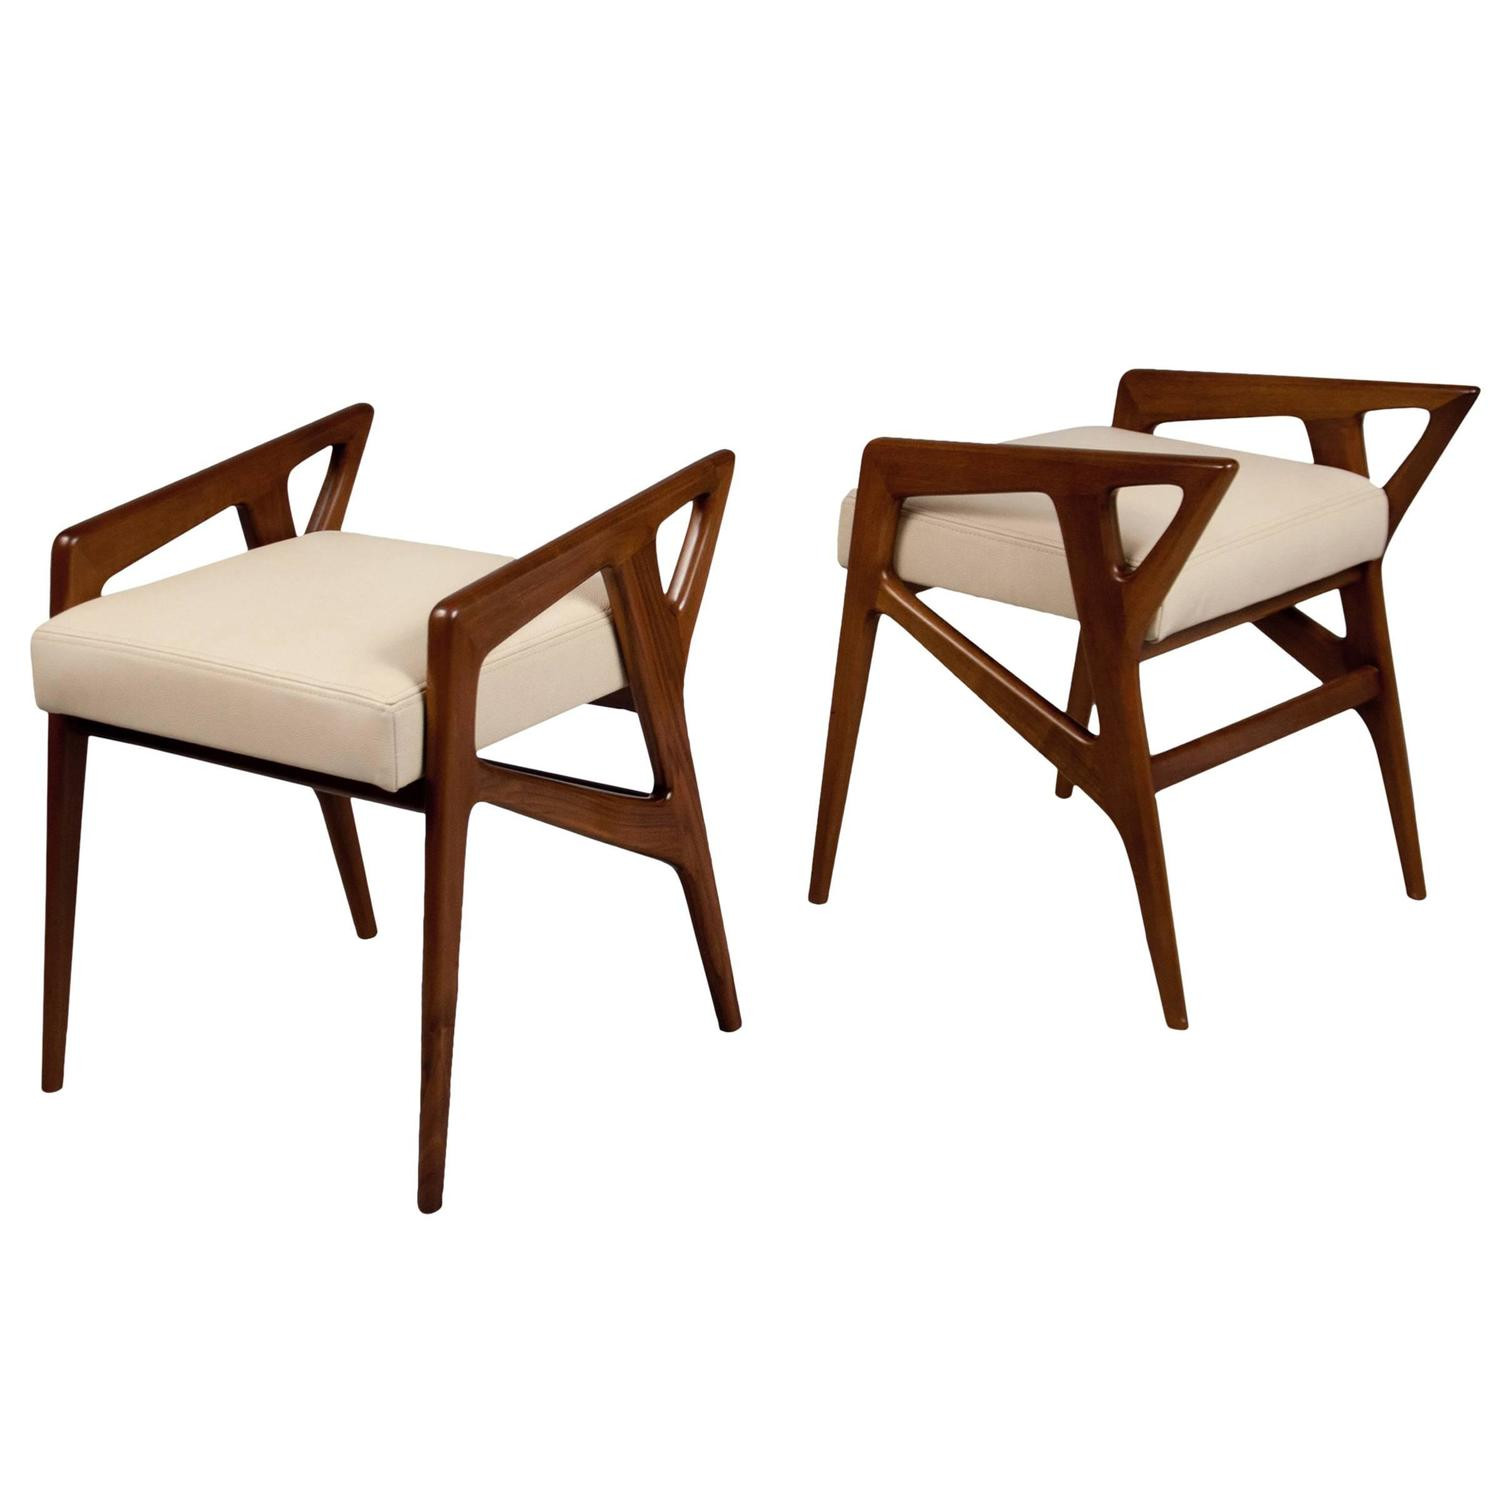 Gio Ponti Chairs On Either Side Of The Cabinet